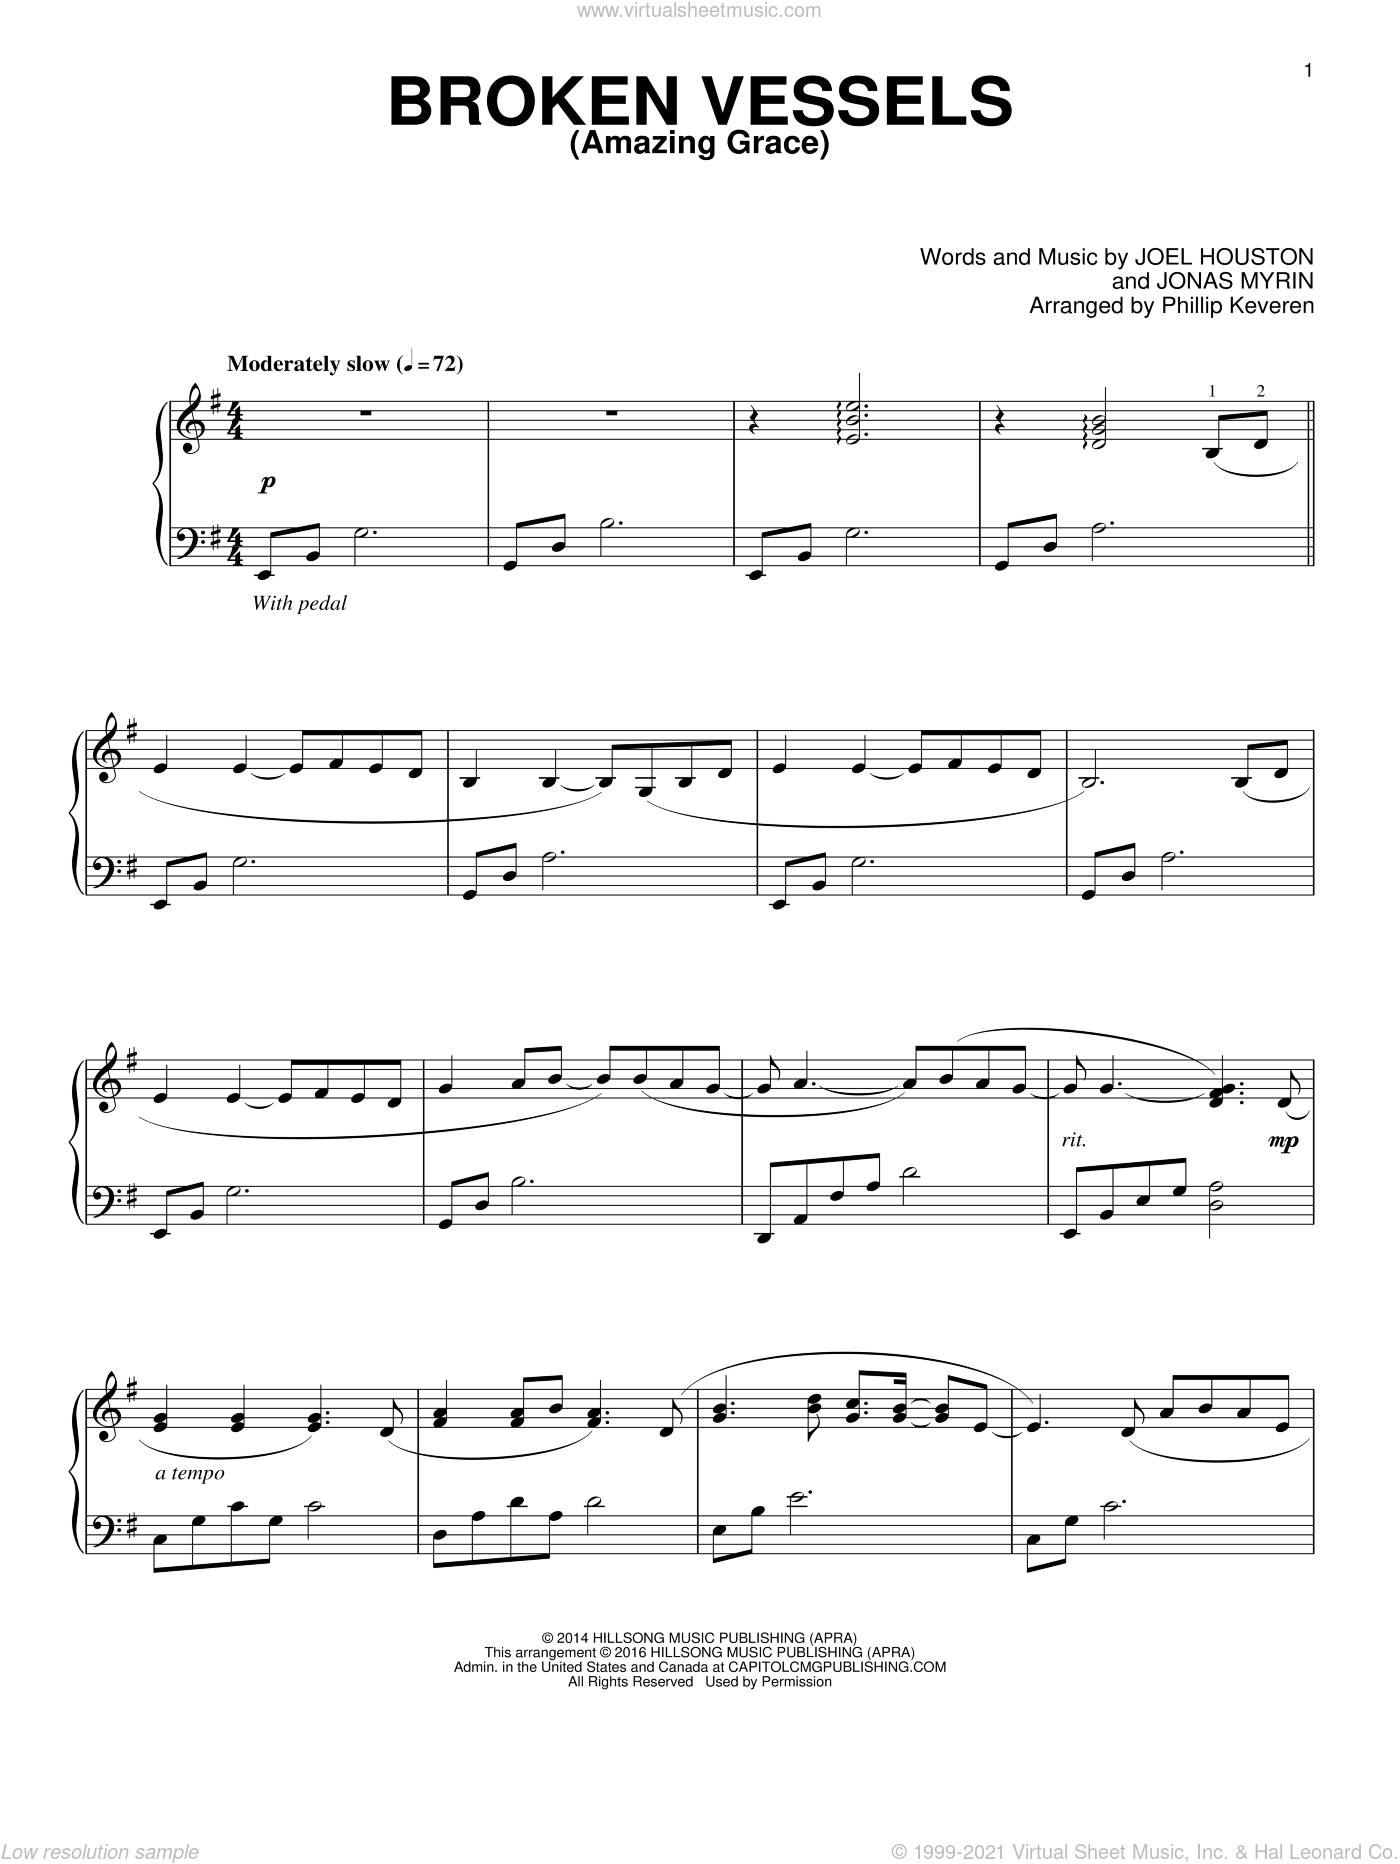 Broken Vessels (Amazing Grace) sheet music for piano solo by Jonas Myrin, Phillip Keveren and Joel Houston, intermediate skill level